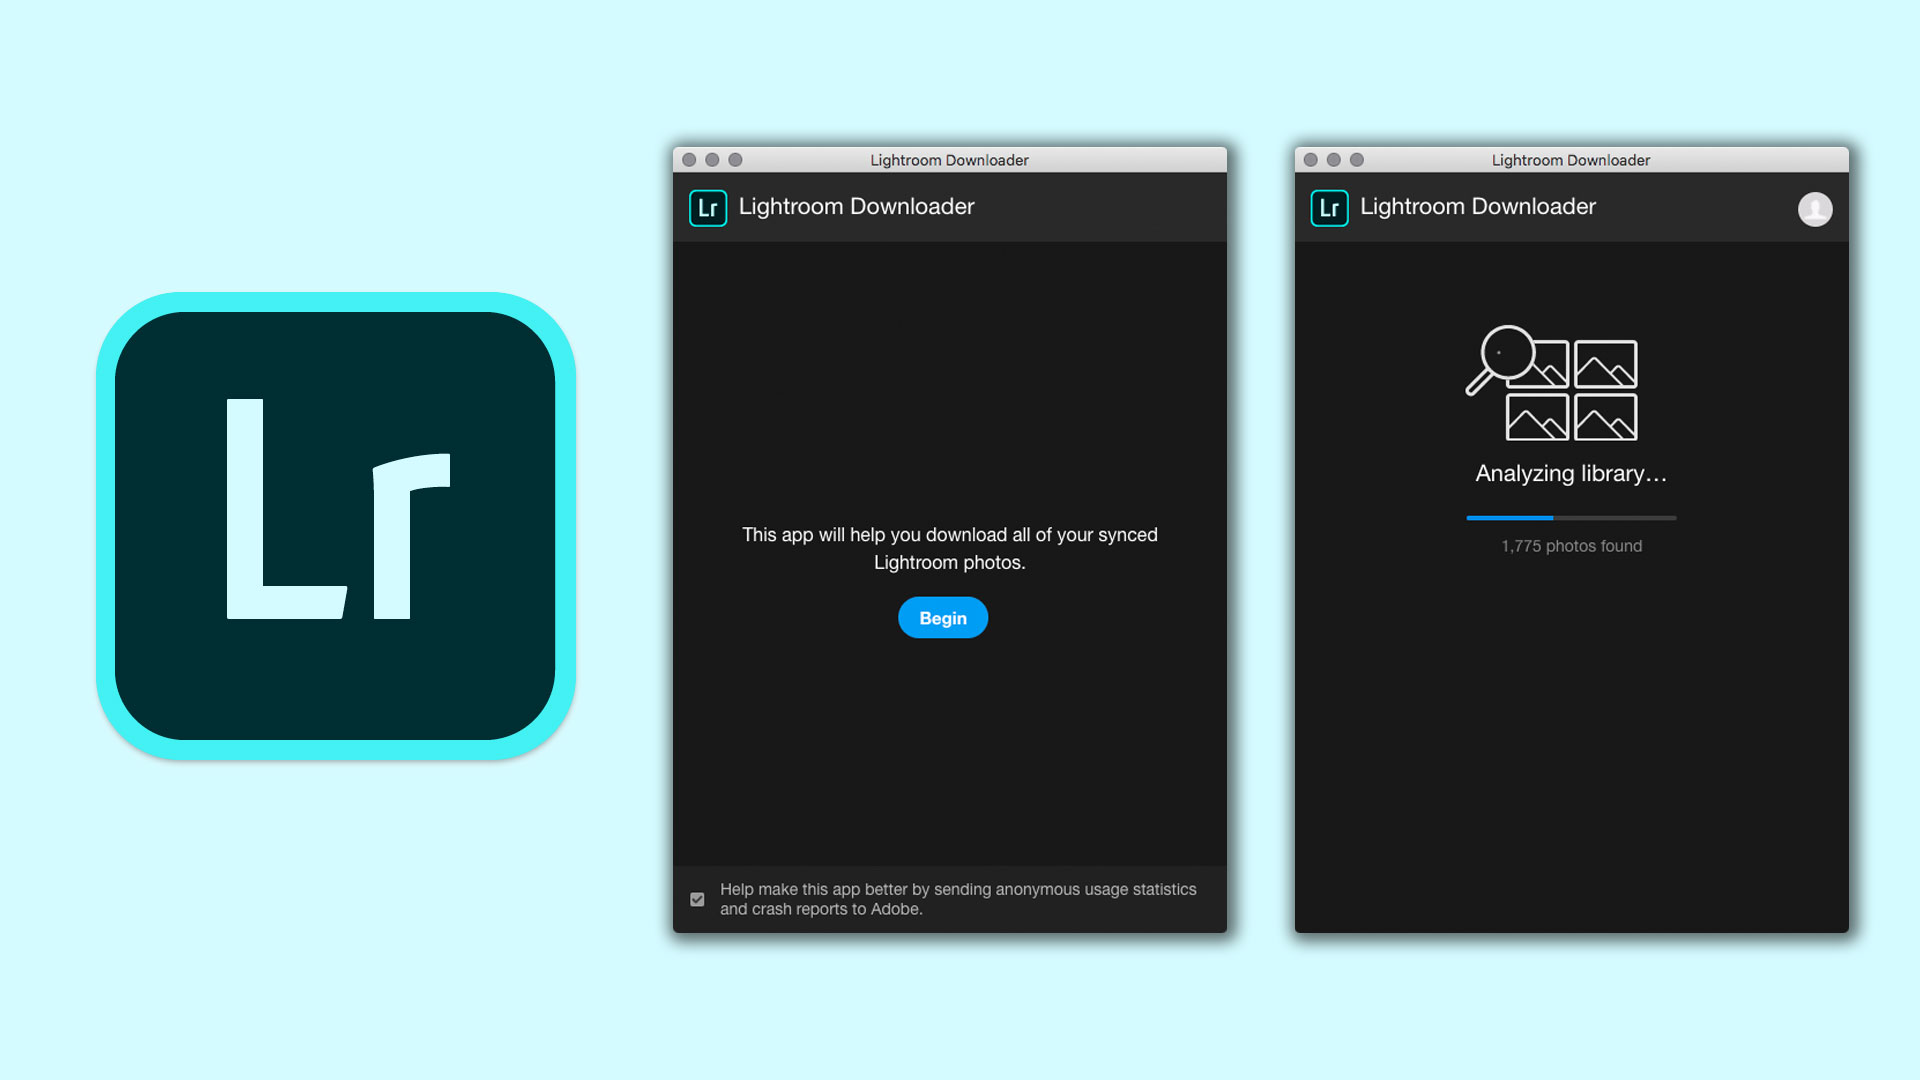 Adobe Releases Lightroom Downloader App to Recover Images